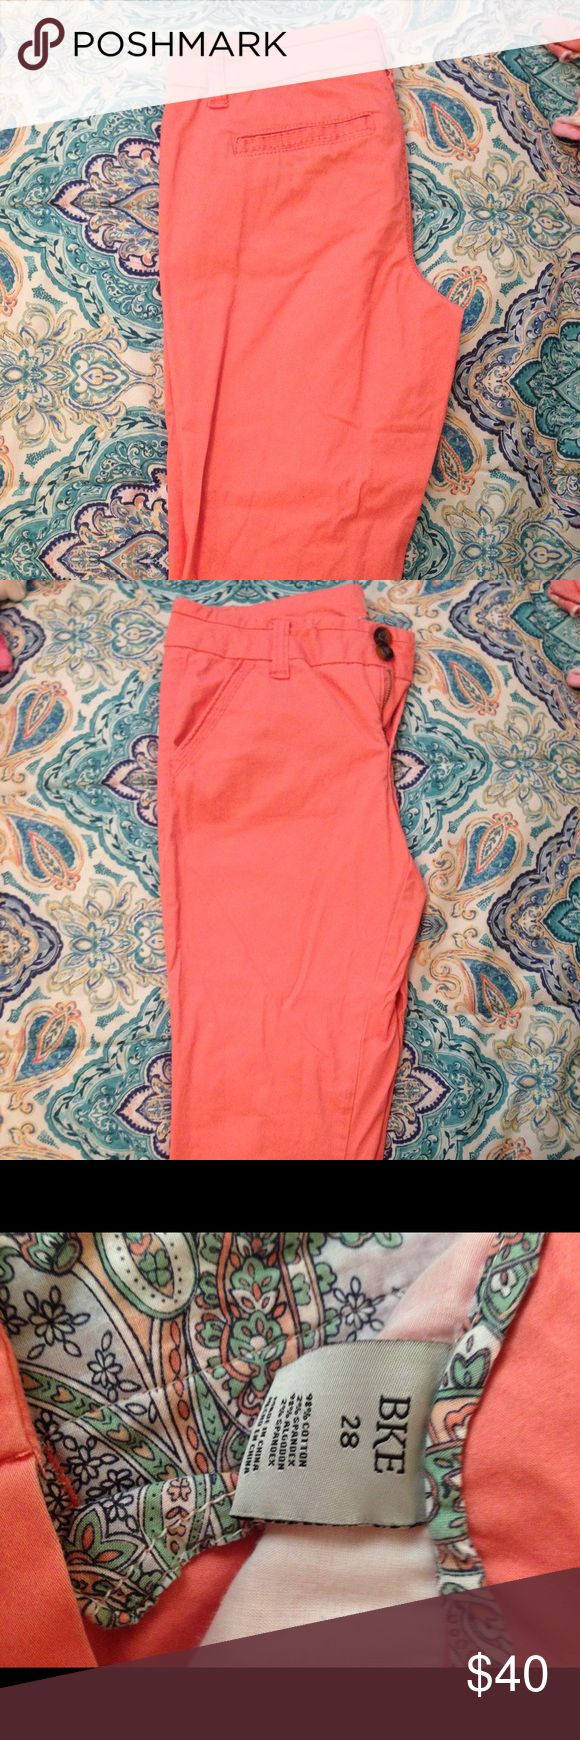 BKE Coral Capris BRAND NEW NWOT, never worn, never washed, only can't return cuz I lost the receipt. SUPER CUTE, just got the wrong size. BKE Pants Capris